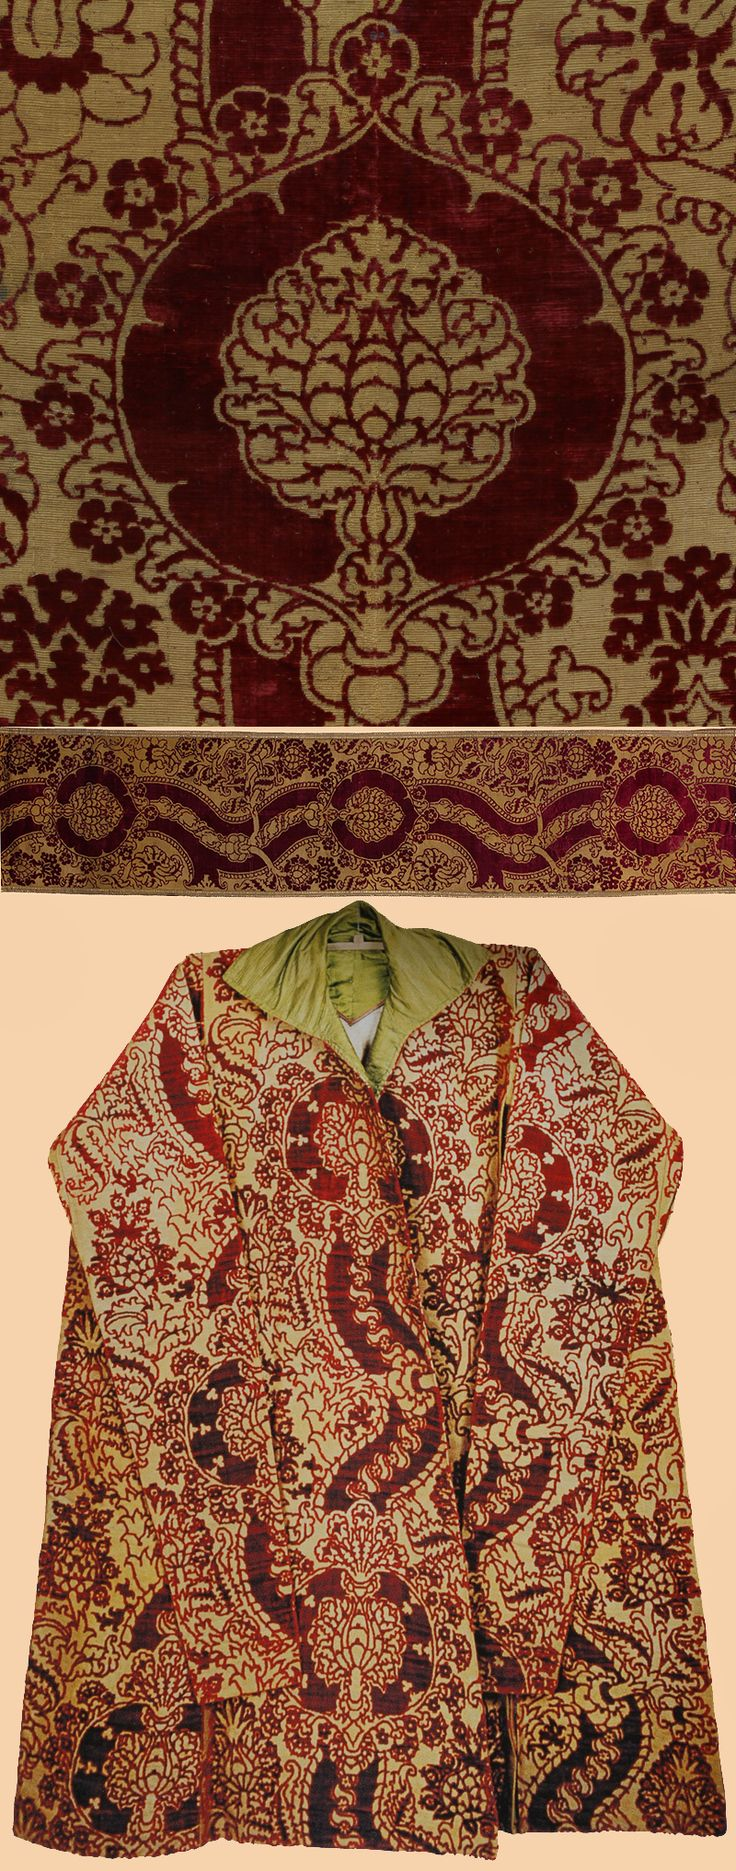 Antique Italian Textile.One of the great masterpieces of mid 15th century Italian cut velvet. Antique cut Velvet with Gold thread the pattern unit measures about 77x28.5cm Mid 15th Century. Associated with Mehmet IV